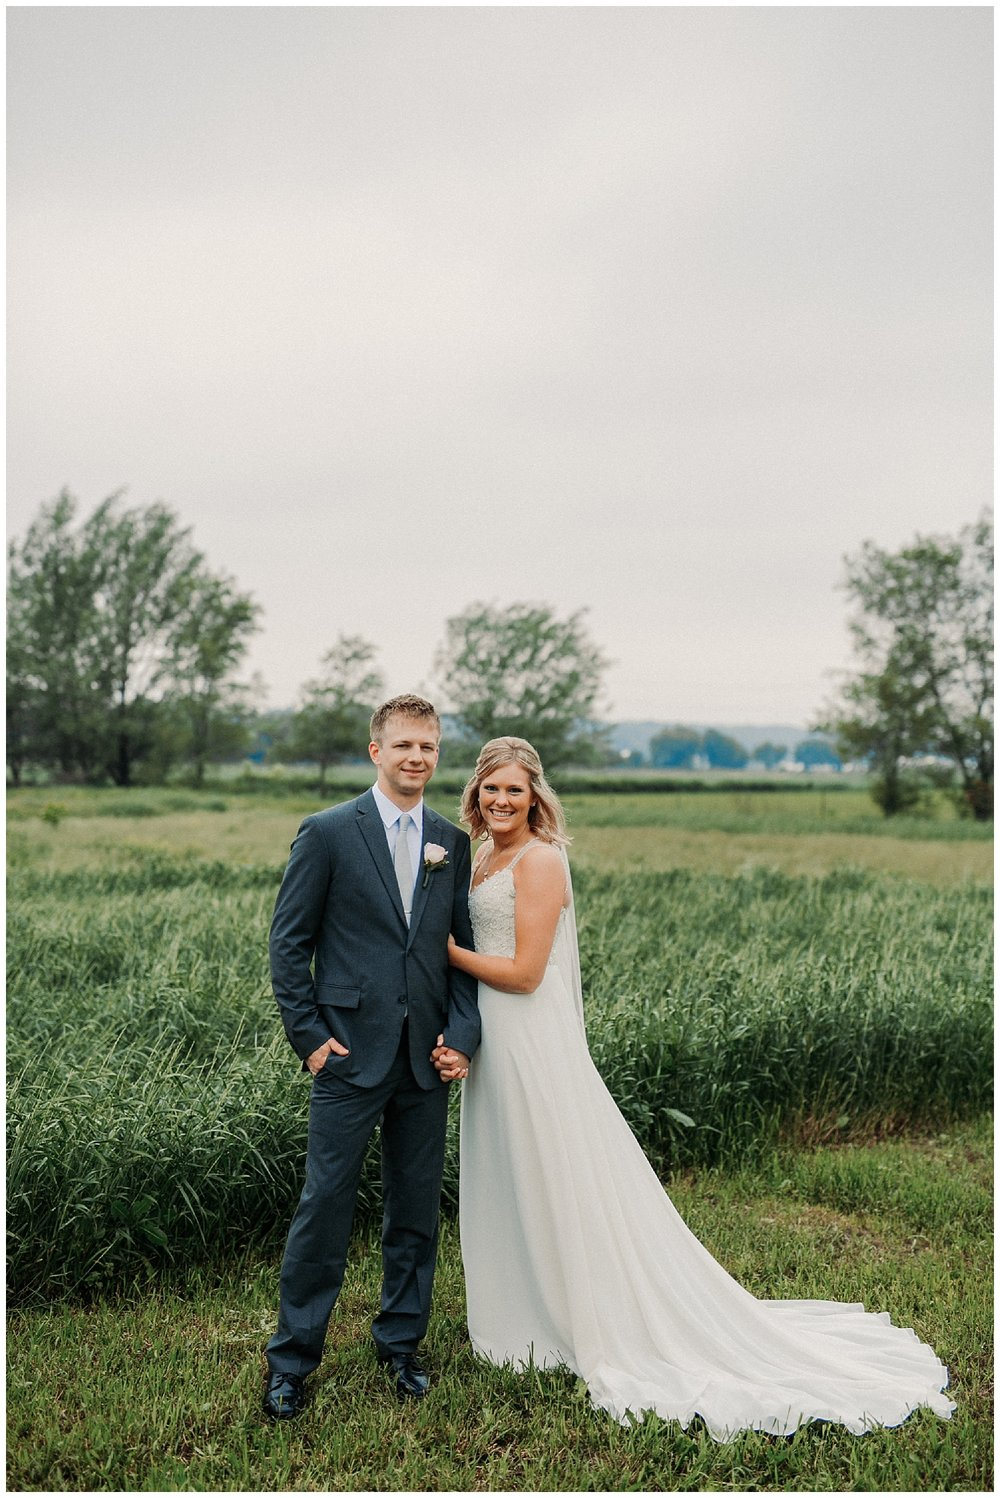 lindybeth photography - persenaire wedding - the old wooden barn-46.jpg